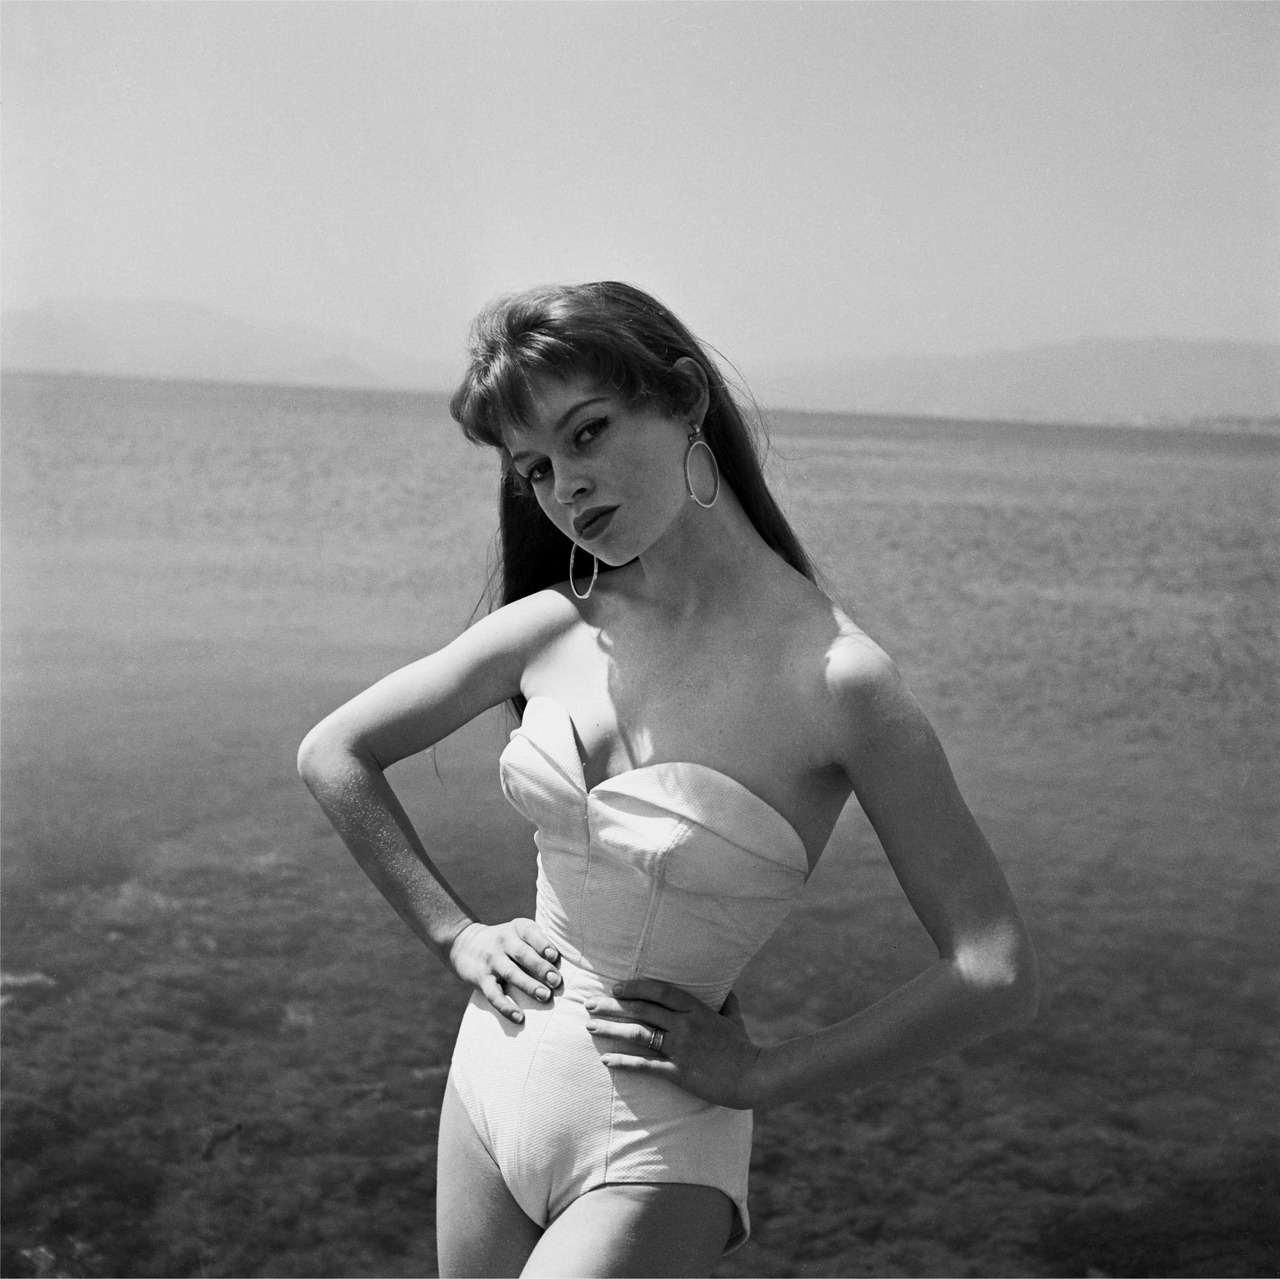 Hoops and Swimsuit. Accessorize with that one-piece. Here's Bridget Bardot at Cannes in 1955 via suicideblonde